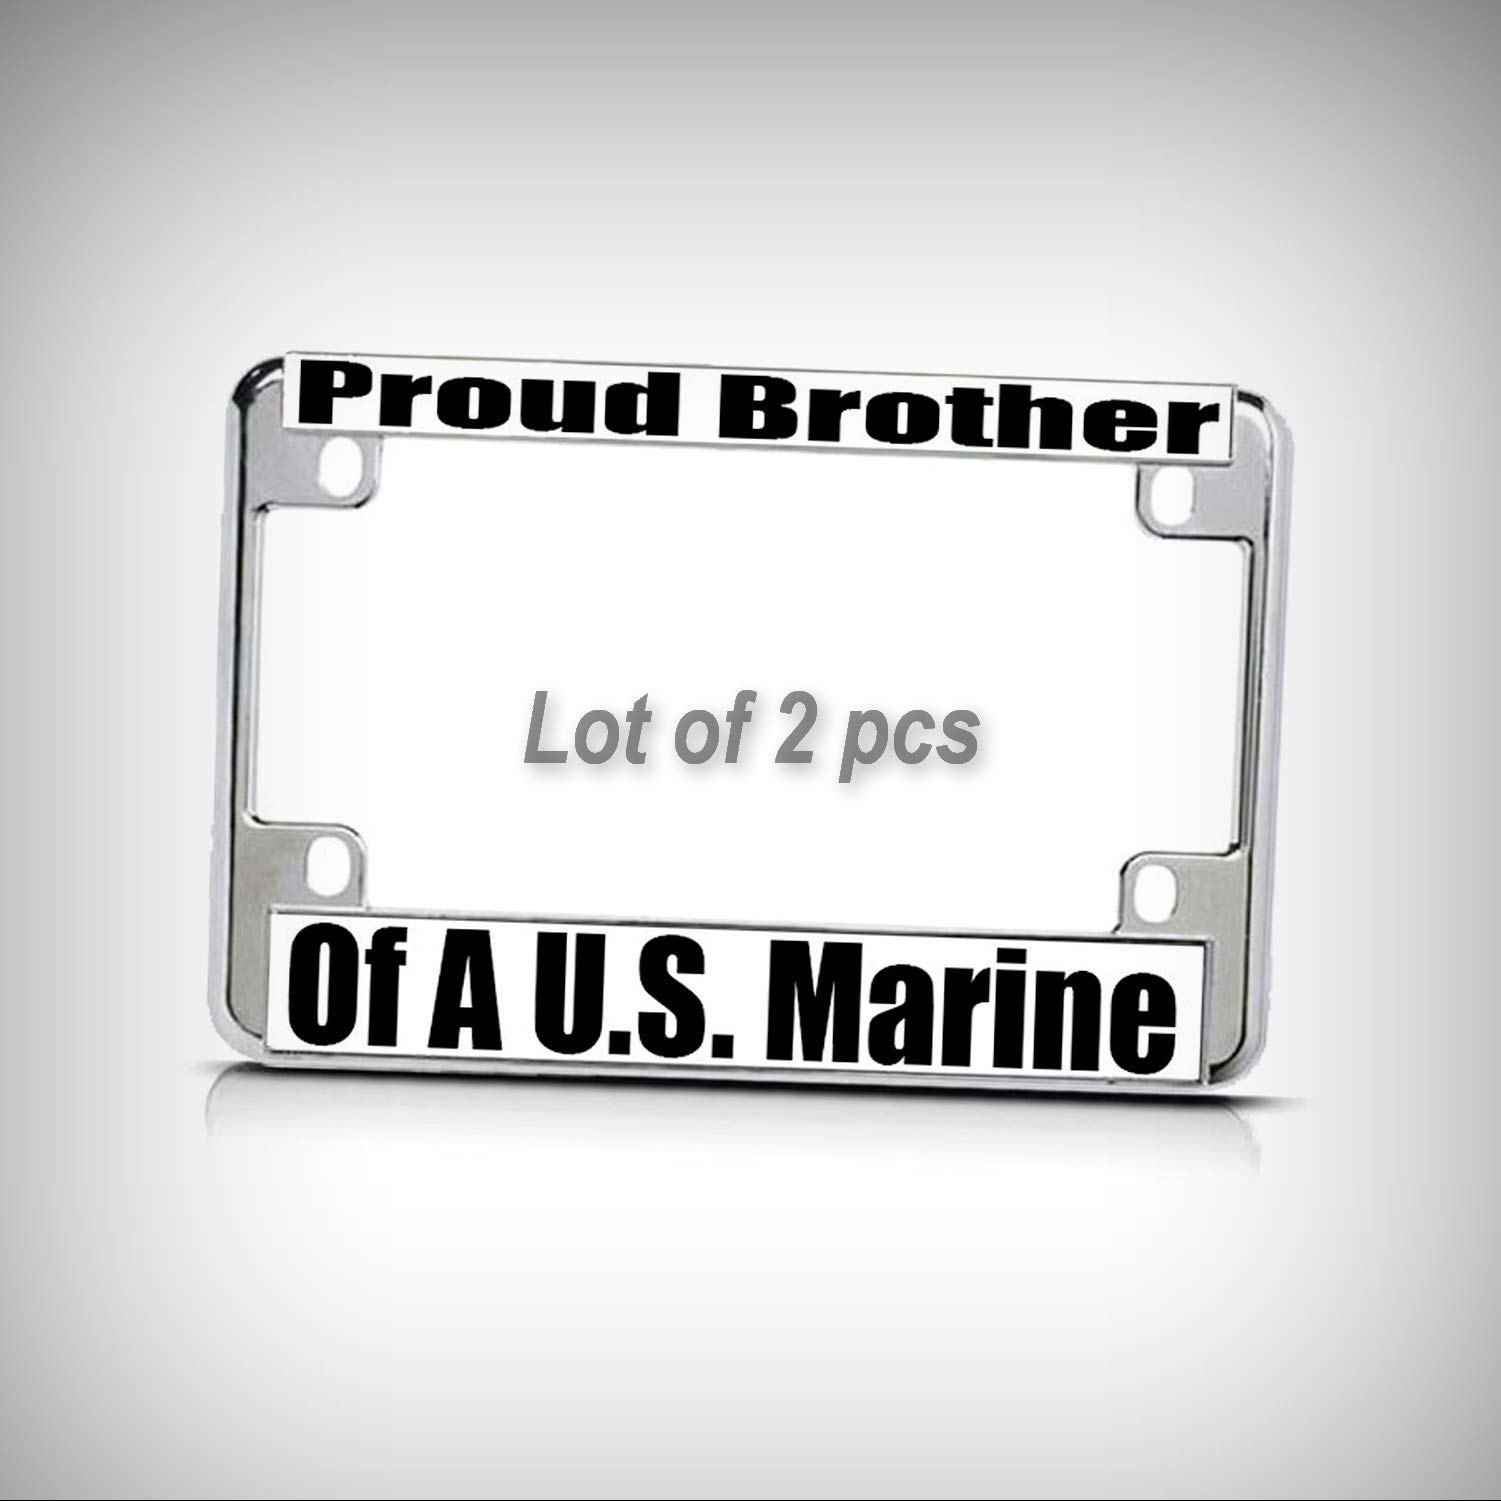 Set of 2 Pcs - Proud Brother of A U.S. Marine Chrome Metal Bike Motorcycle Tag Holder License Plate Frame Decorative Border